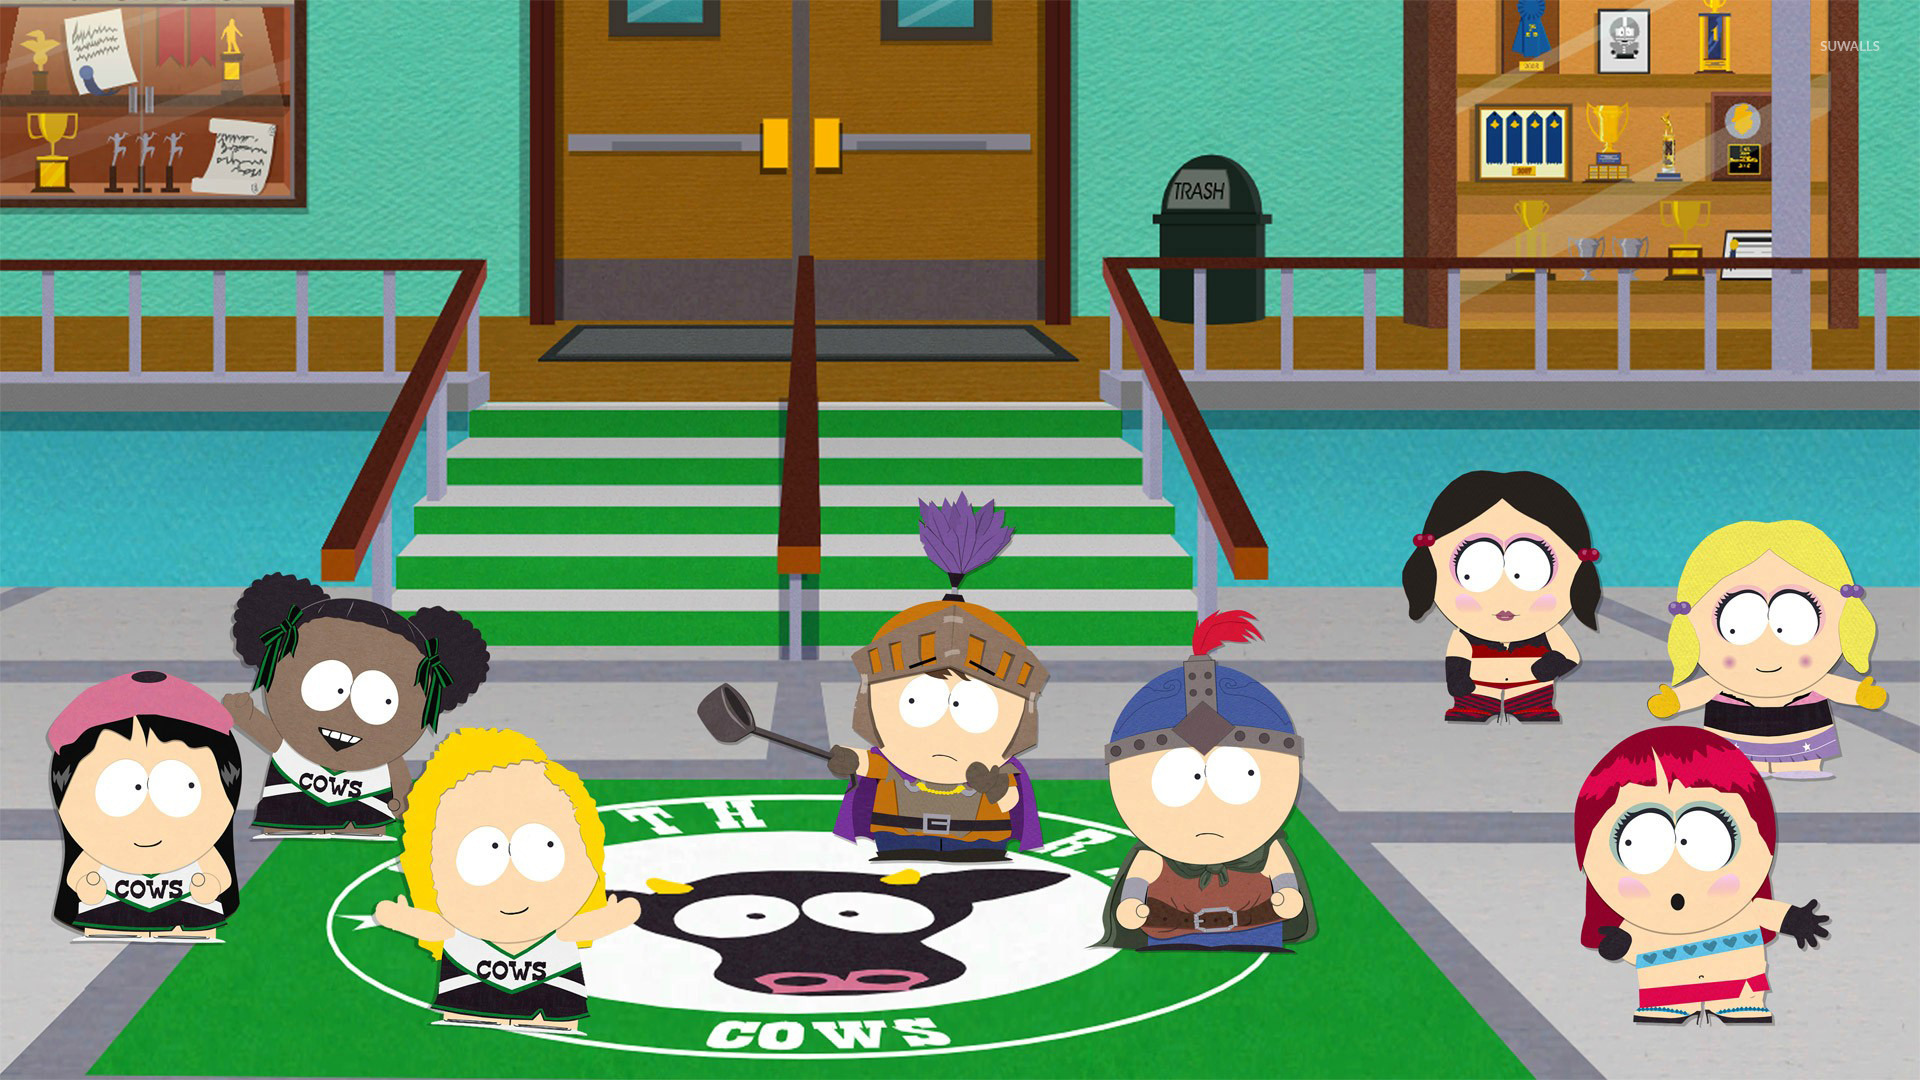 south park the stick of truth 6 wallpaper game